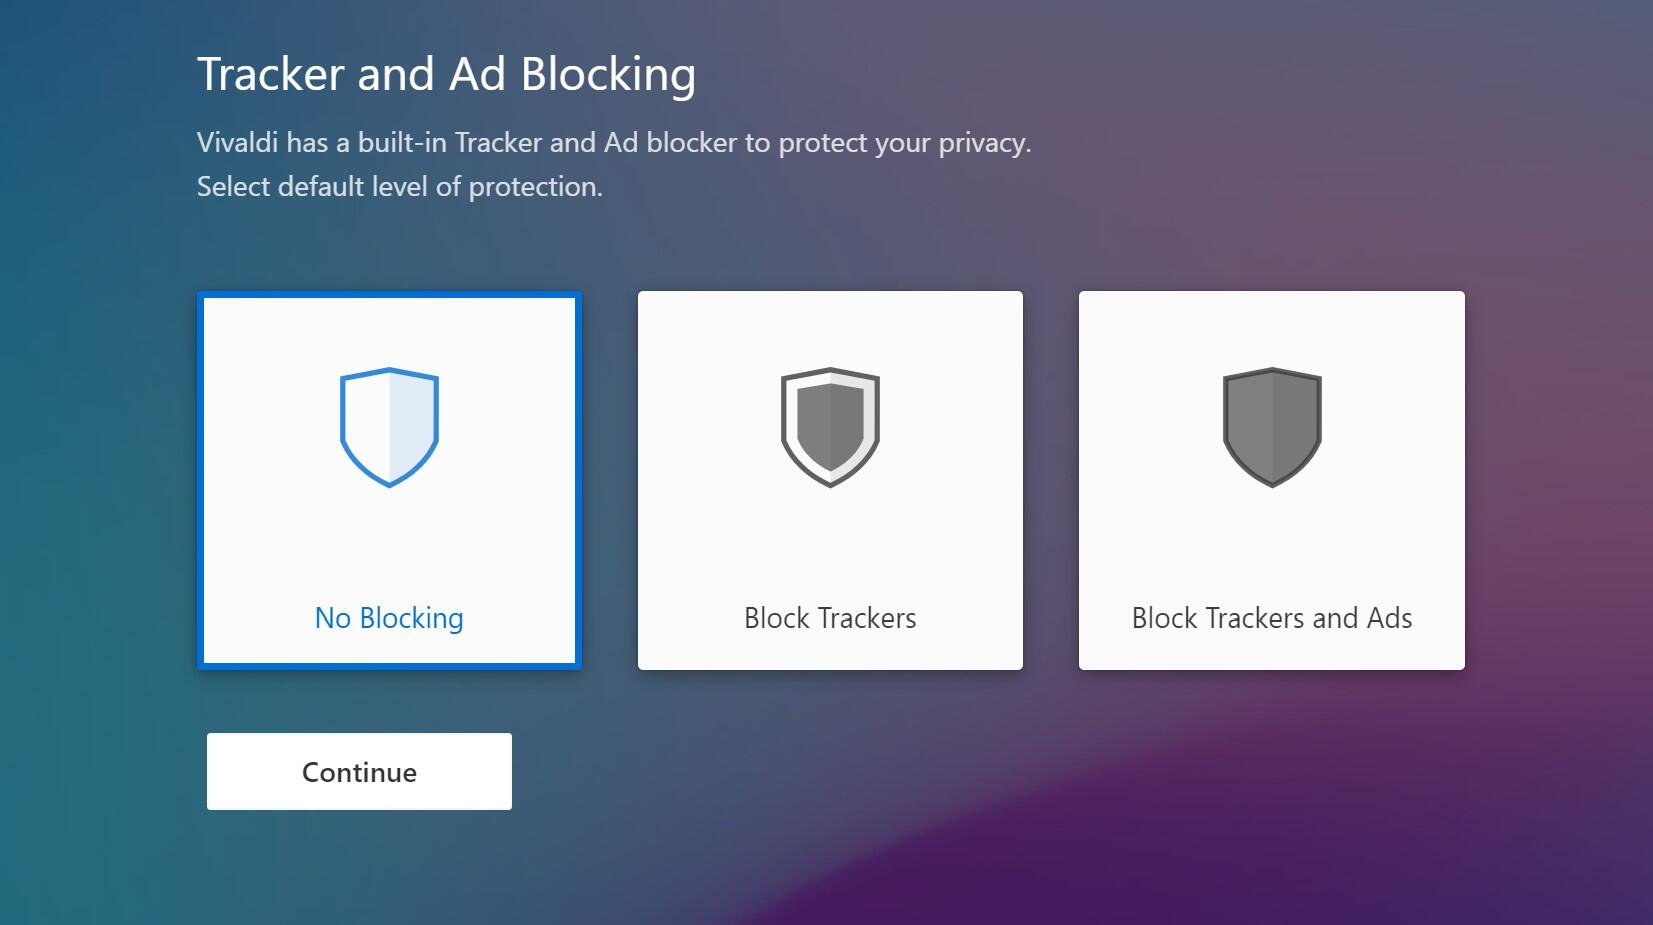 Vivaldi 3.0 brings the ability to block online ads and trackers.